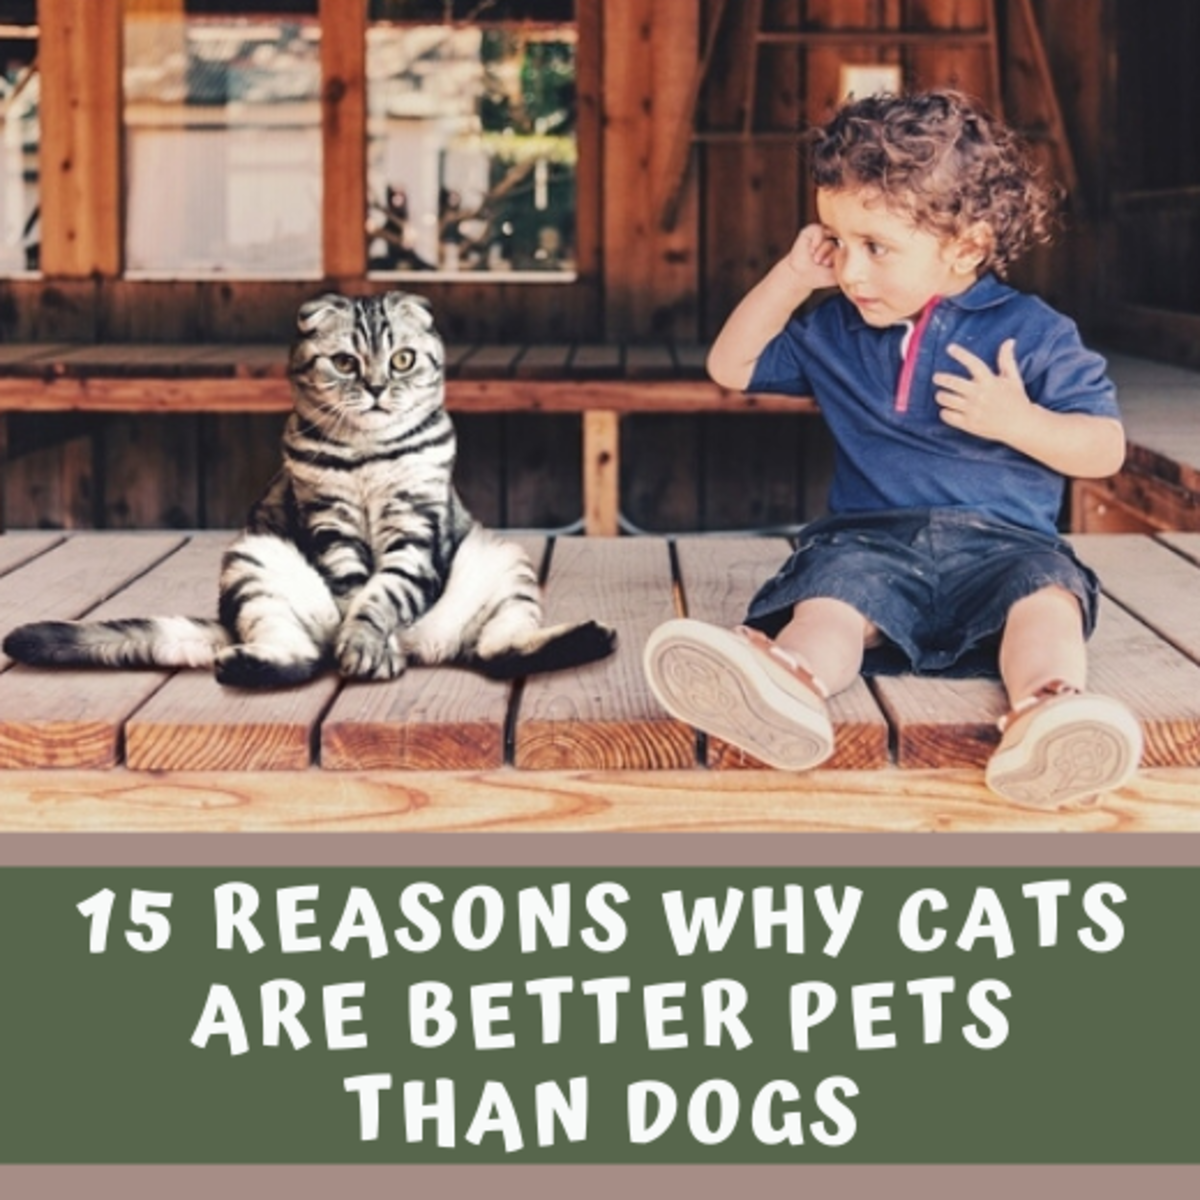 15 Reasons Why Cats Are Better Pets Than dogs.